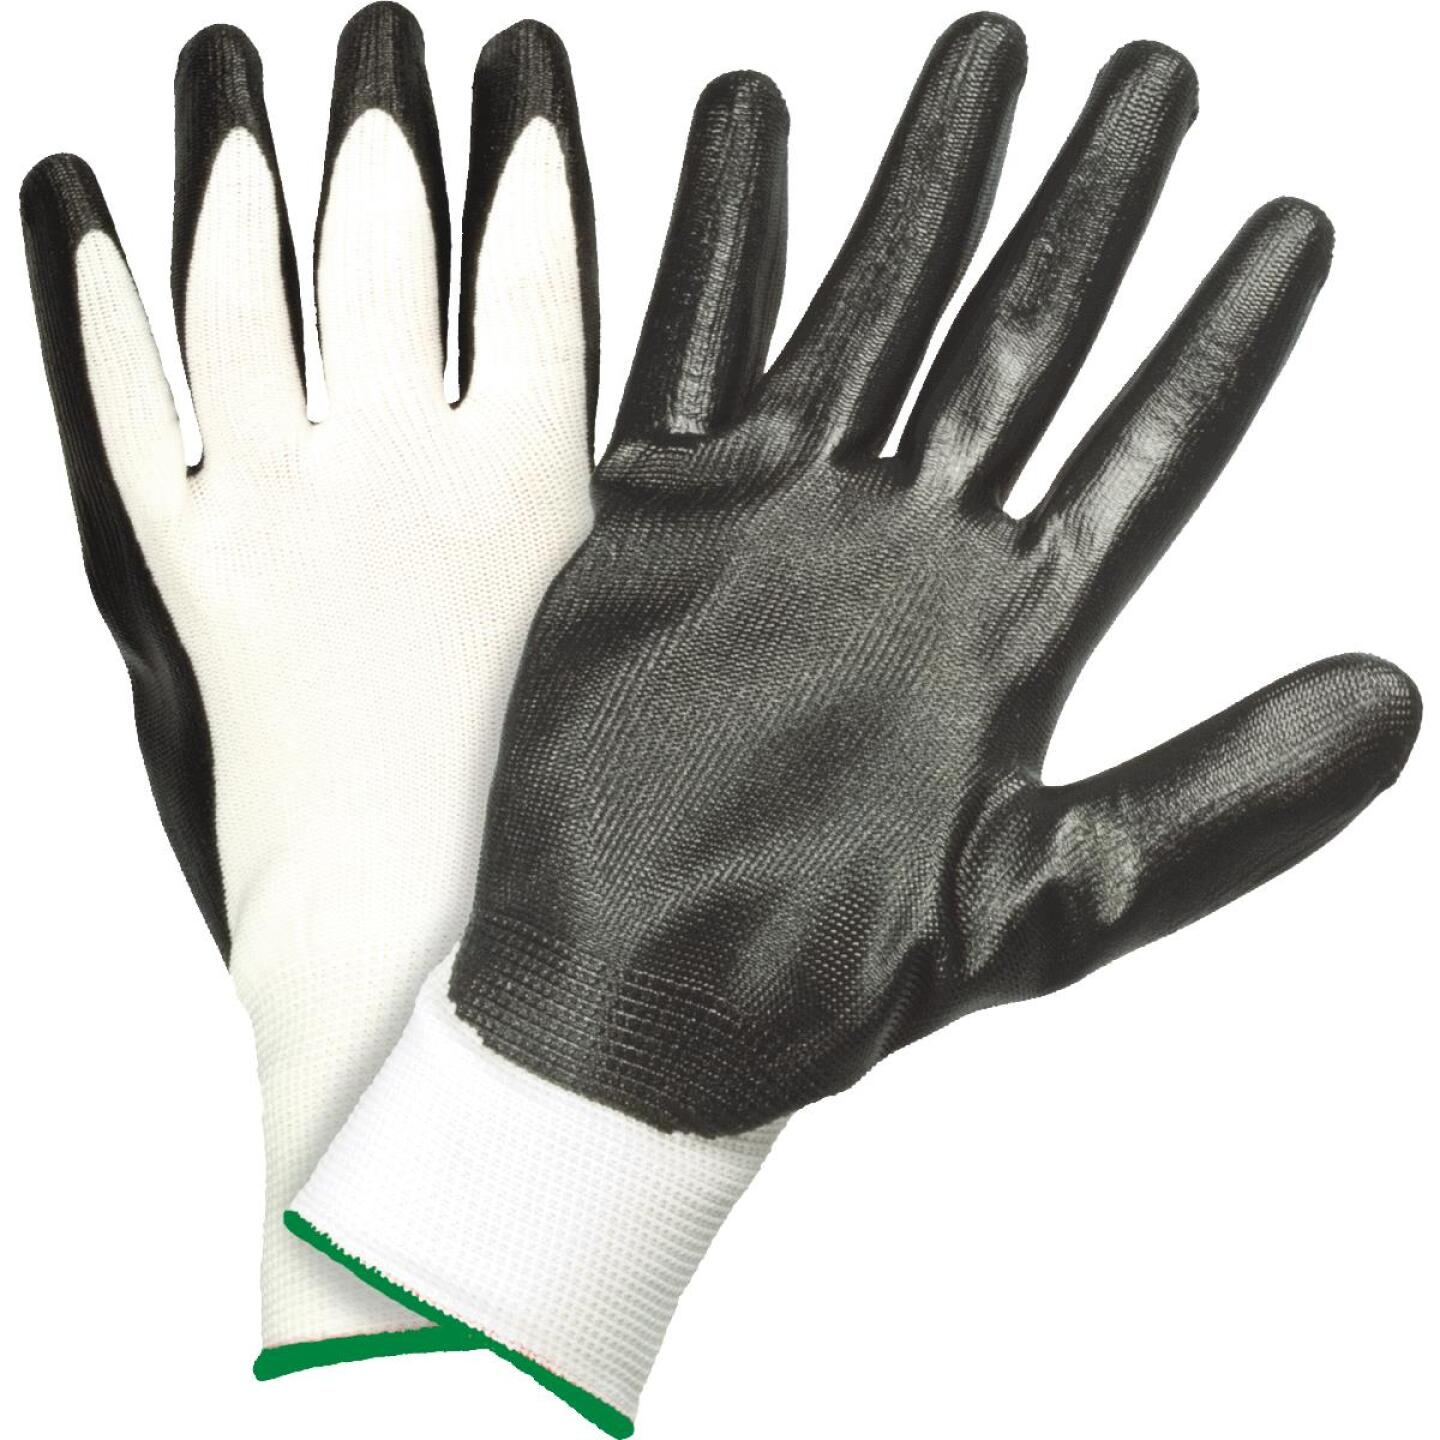 West Chester Protective Gear Men's Large Nitrile Coated Glove (5-Pack) Image 1